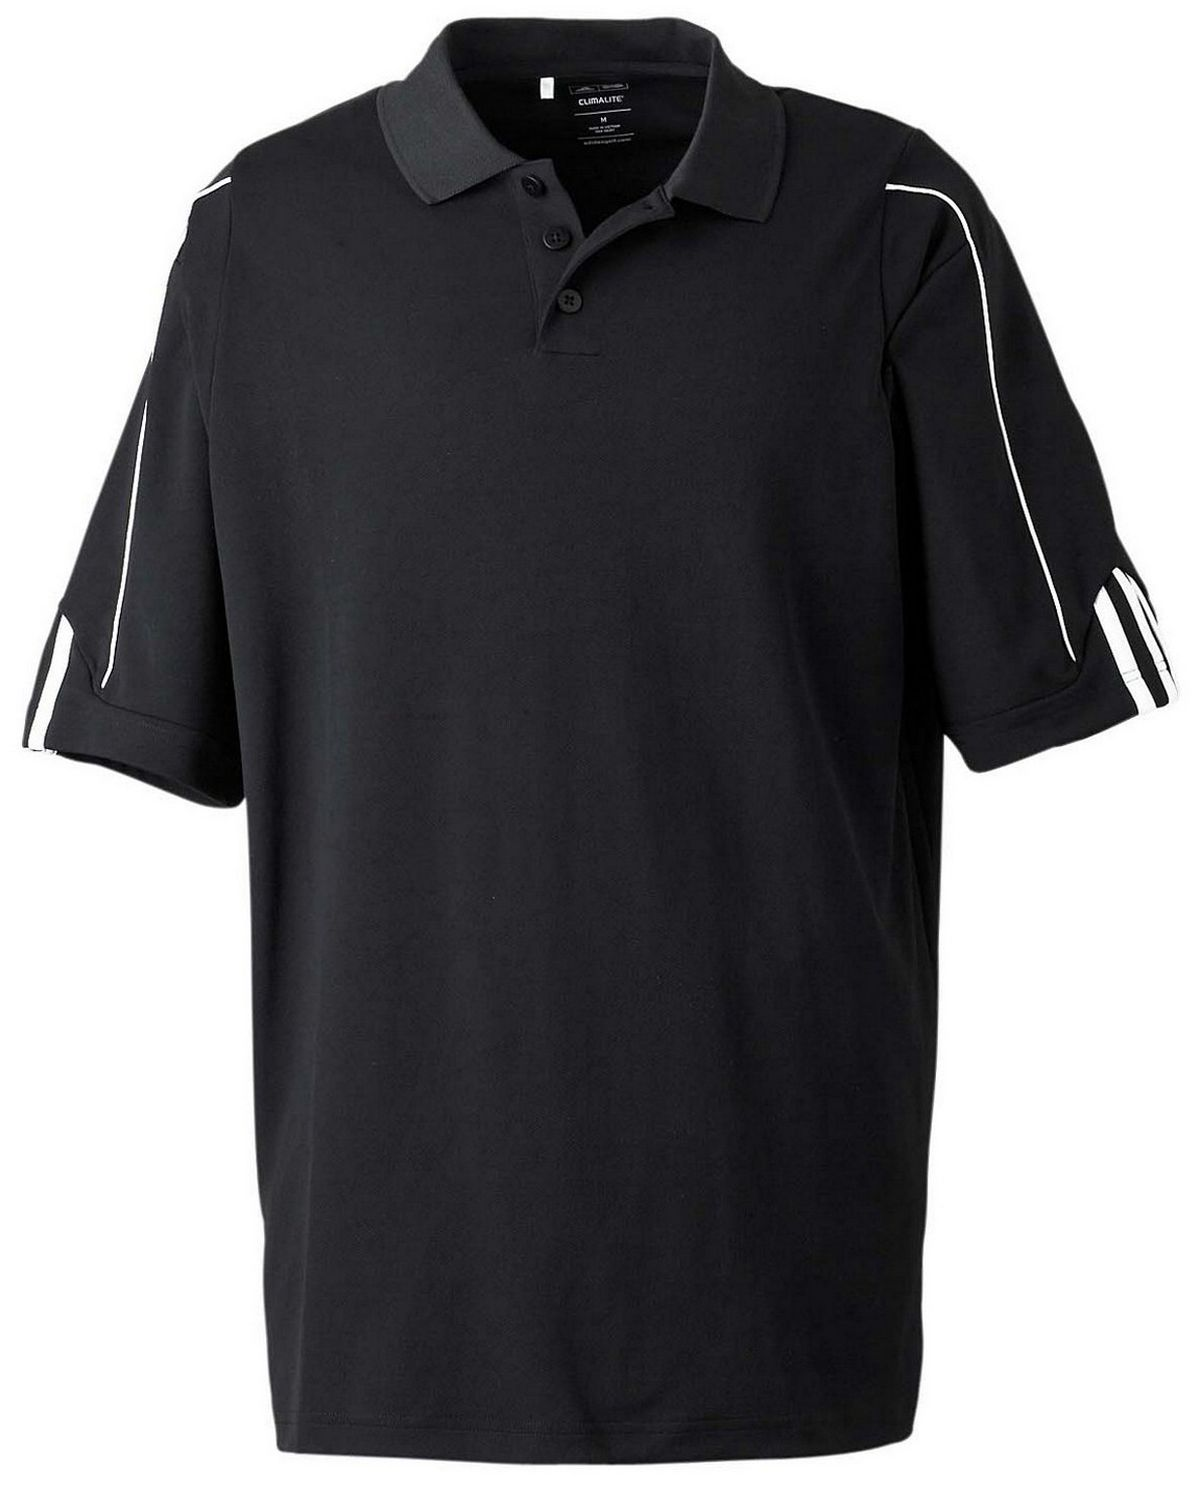 premium selection f4c2d 3ccaa Buy Adidas Golf A76 Men s ClimaLite 3-Stripes Cuff Polo